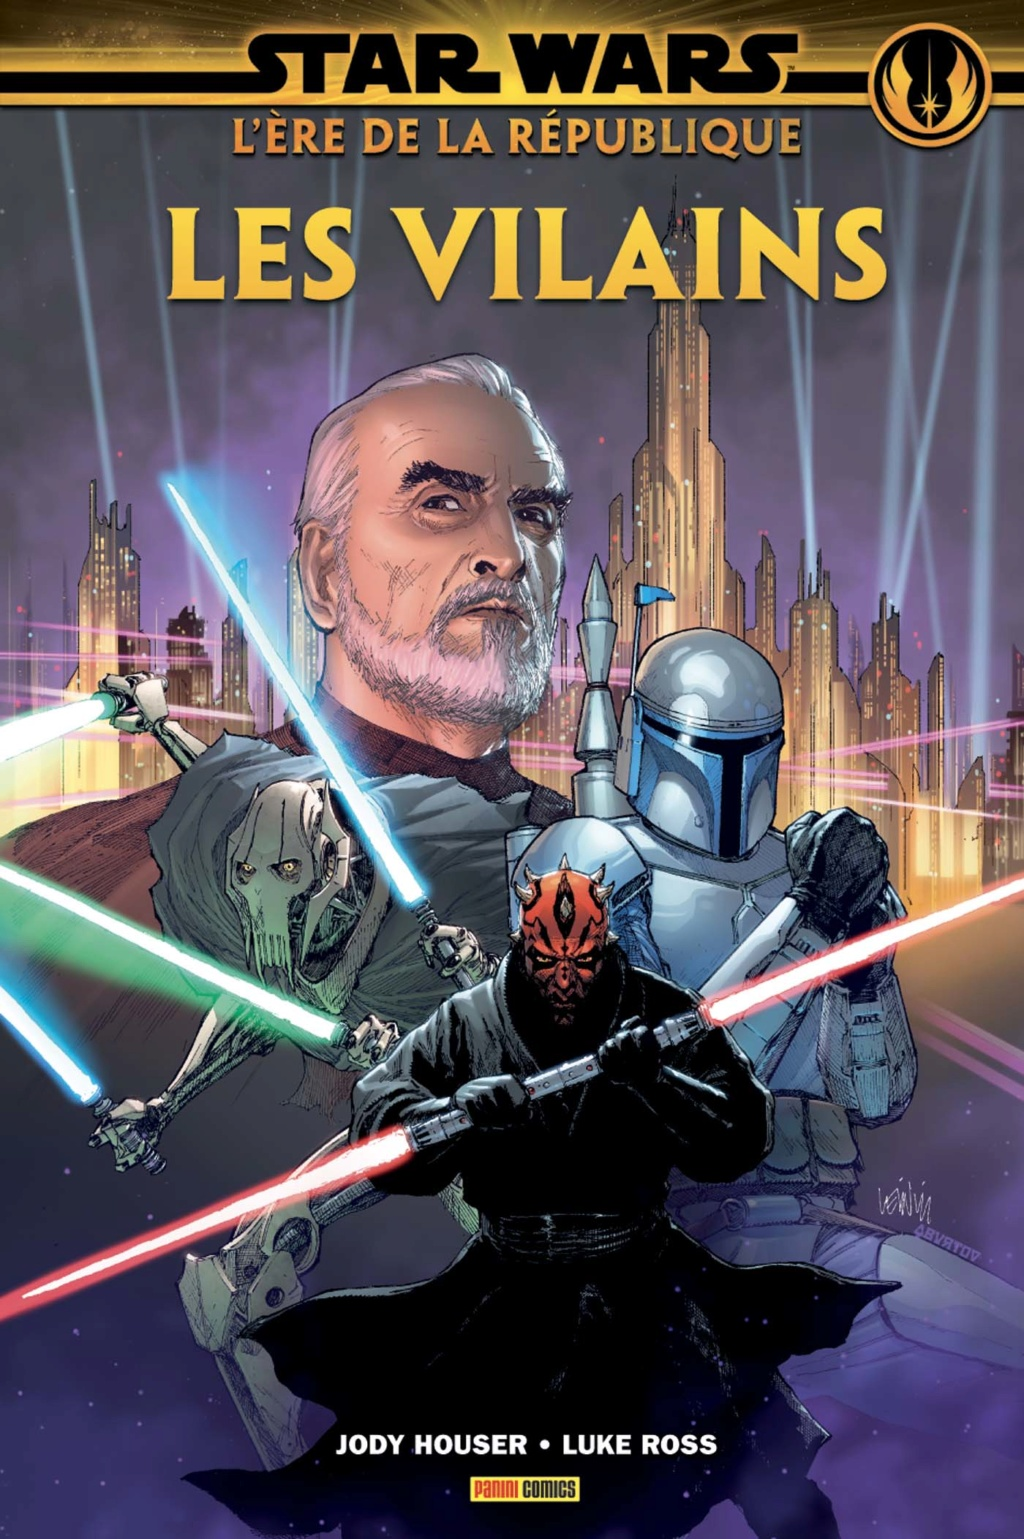 LE COIN STAR WARS (Avec spoilers ) - Page 13 Ererep10